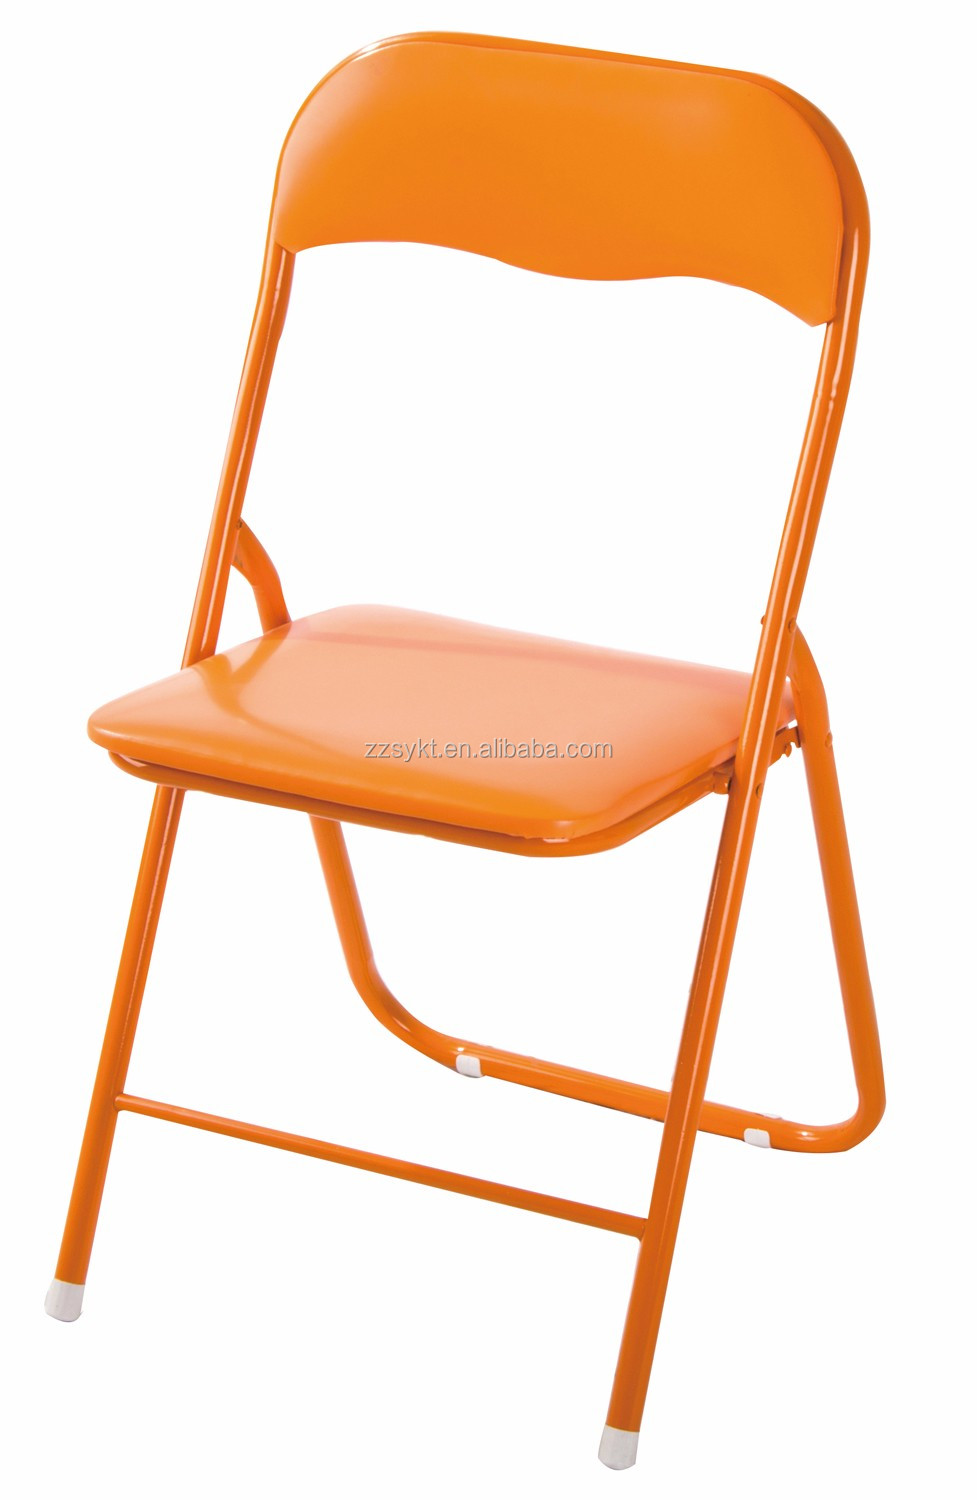 Cheap Metal Folding Chairs With Pvc Seat And Back For Sale Buy Cheap Metal